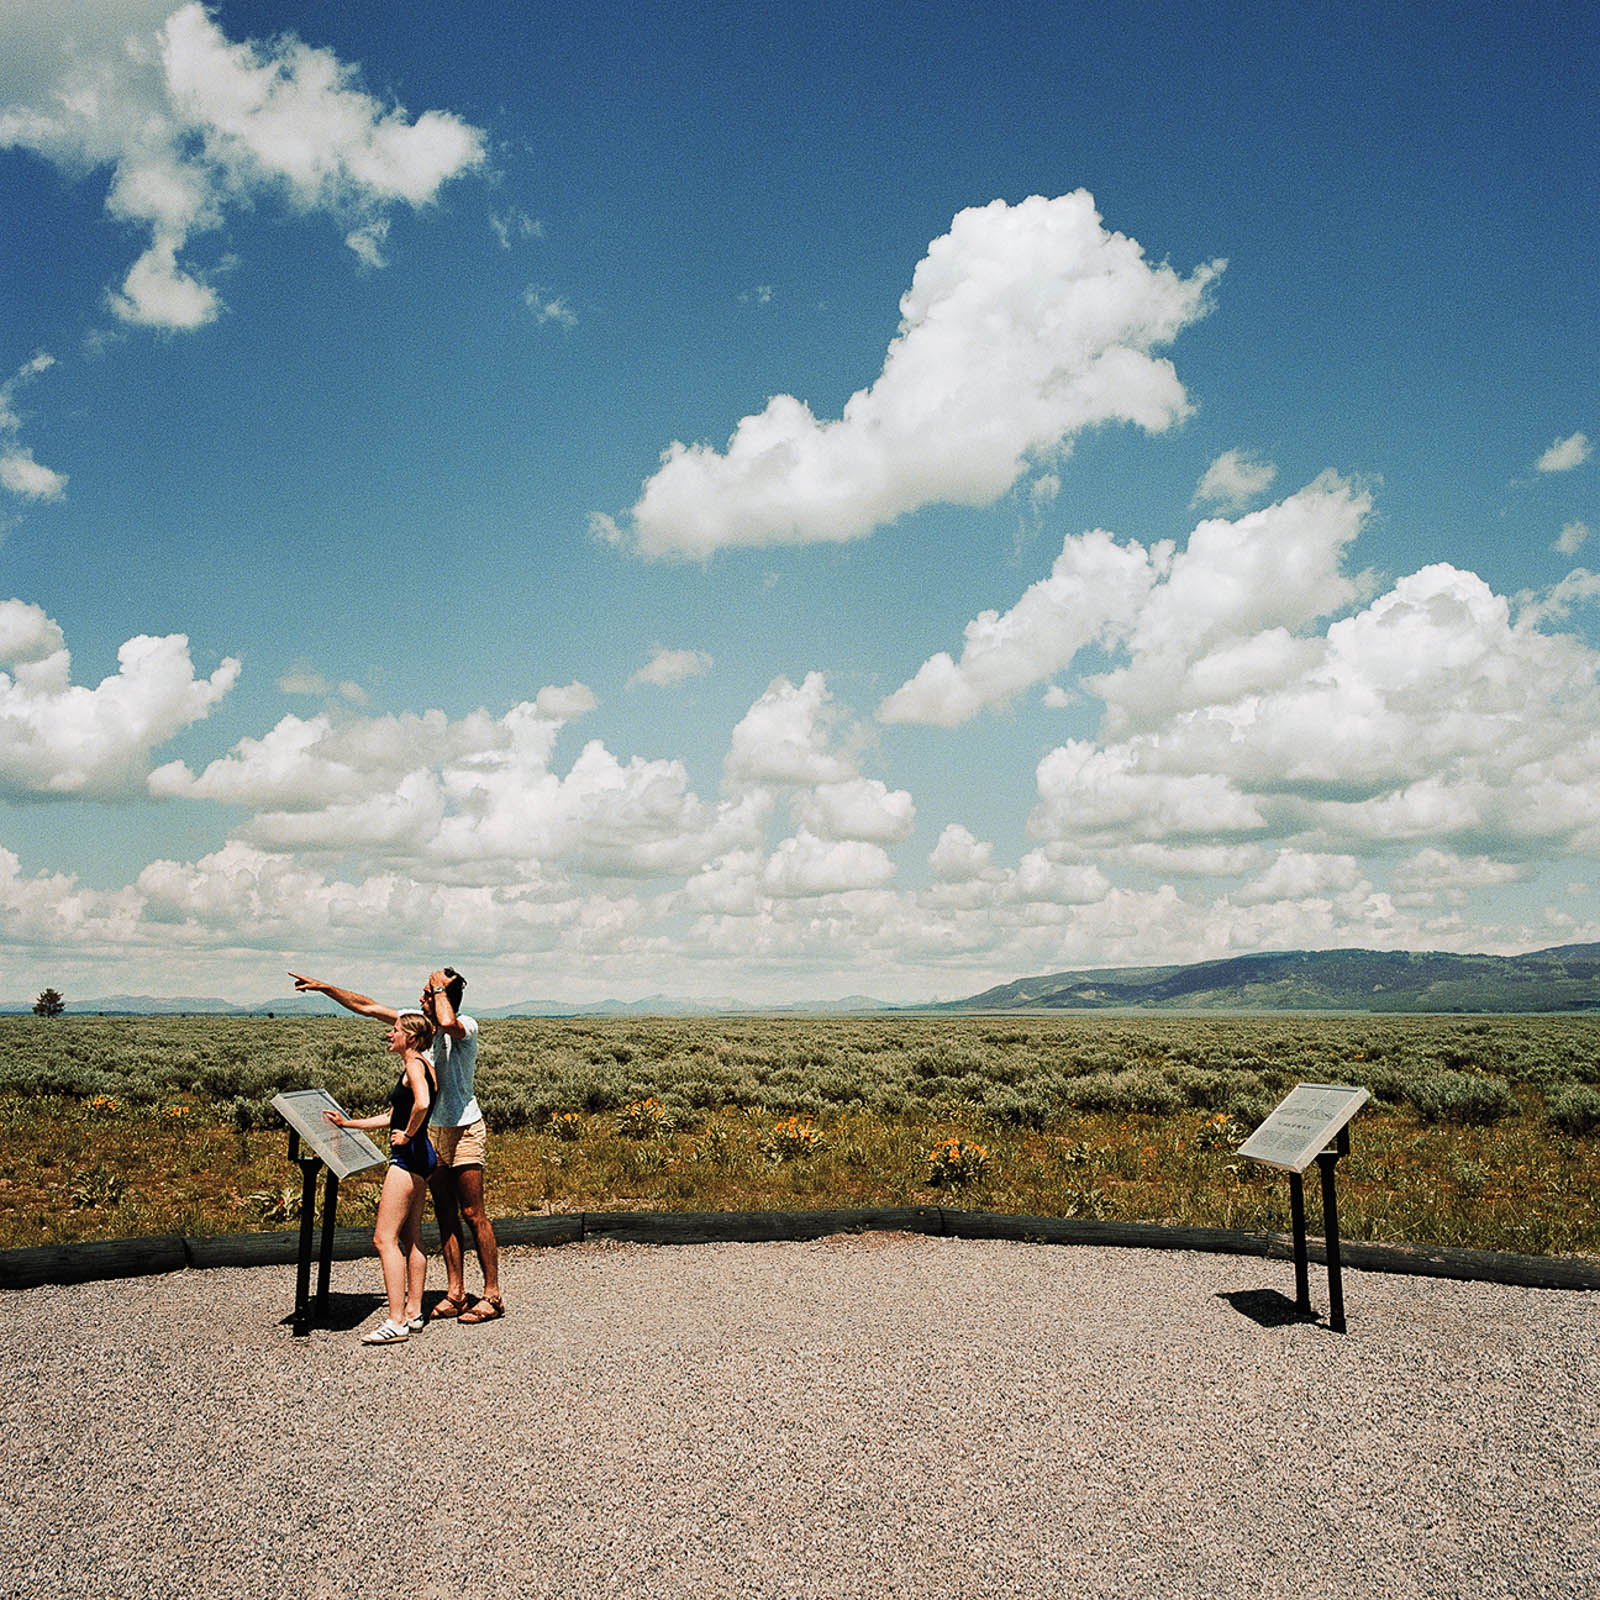 Couple Viewing Grand Tetons National Park, Wyoming 1980